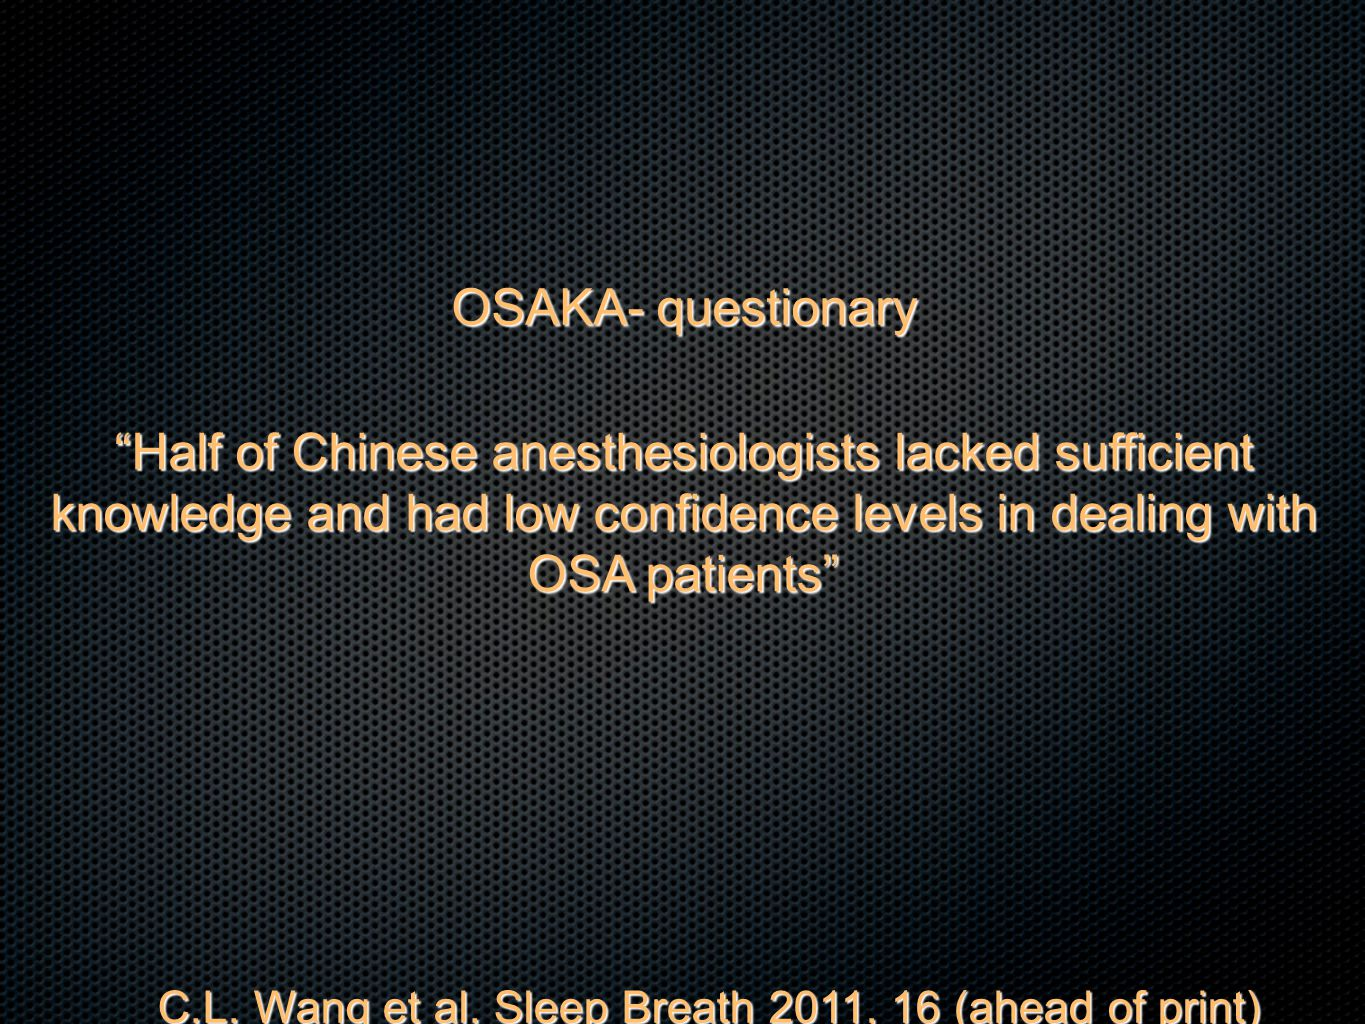 """C.L. Wang et al. Sleep Breath 2011, 16 (ahead of print) """"Half of Chinese anesthesiologists lacked sufficient knowledge and had low confidence levels i"""